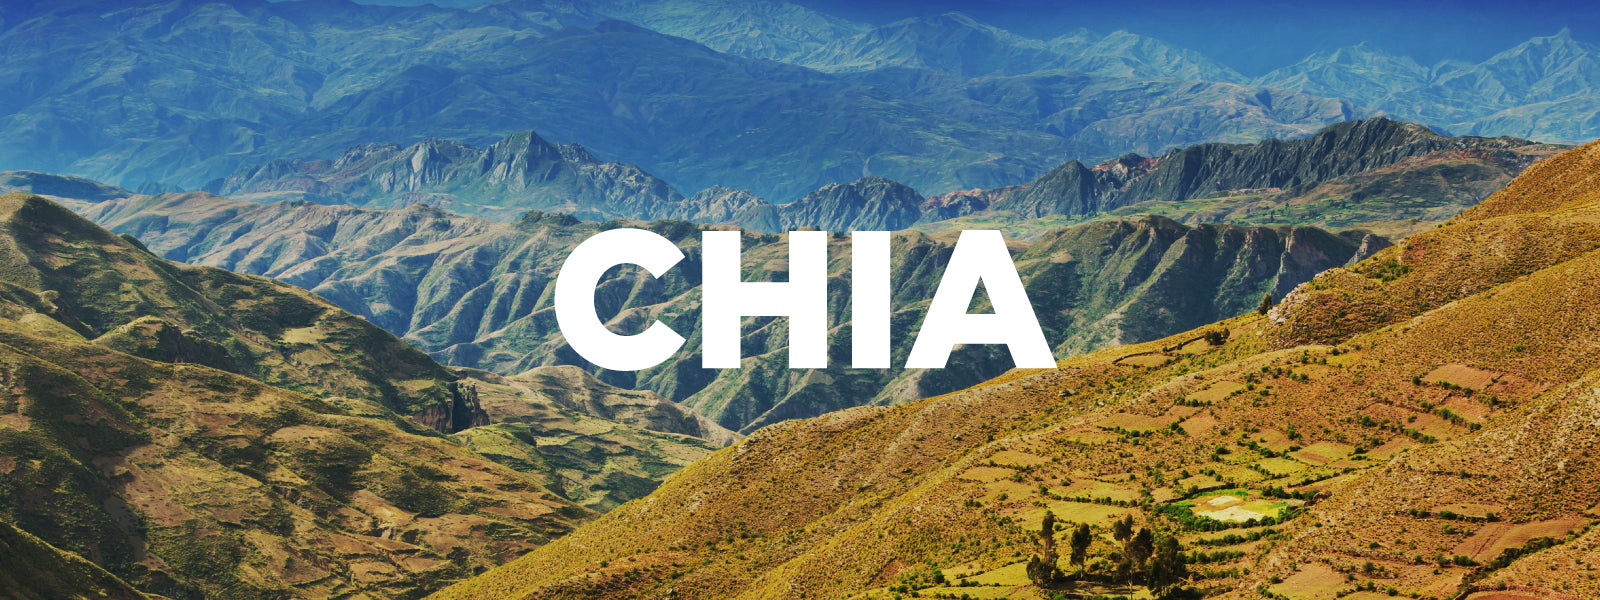 Chia growing in the mountains of Bolivia, South America.